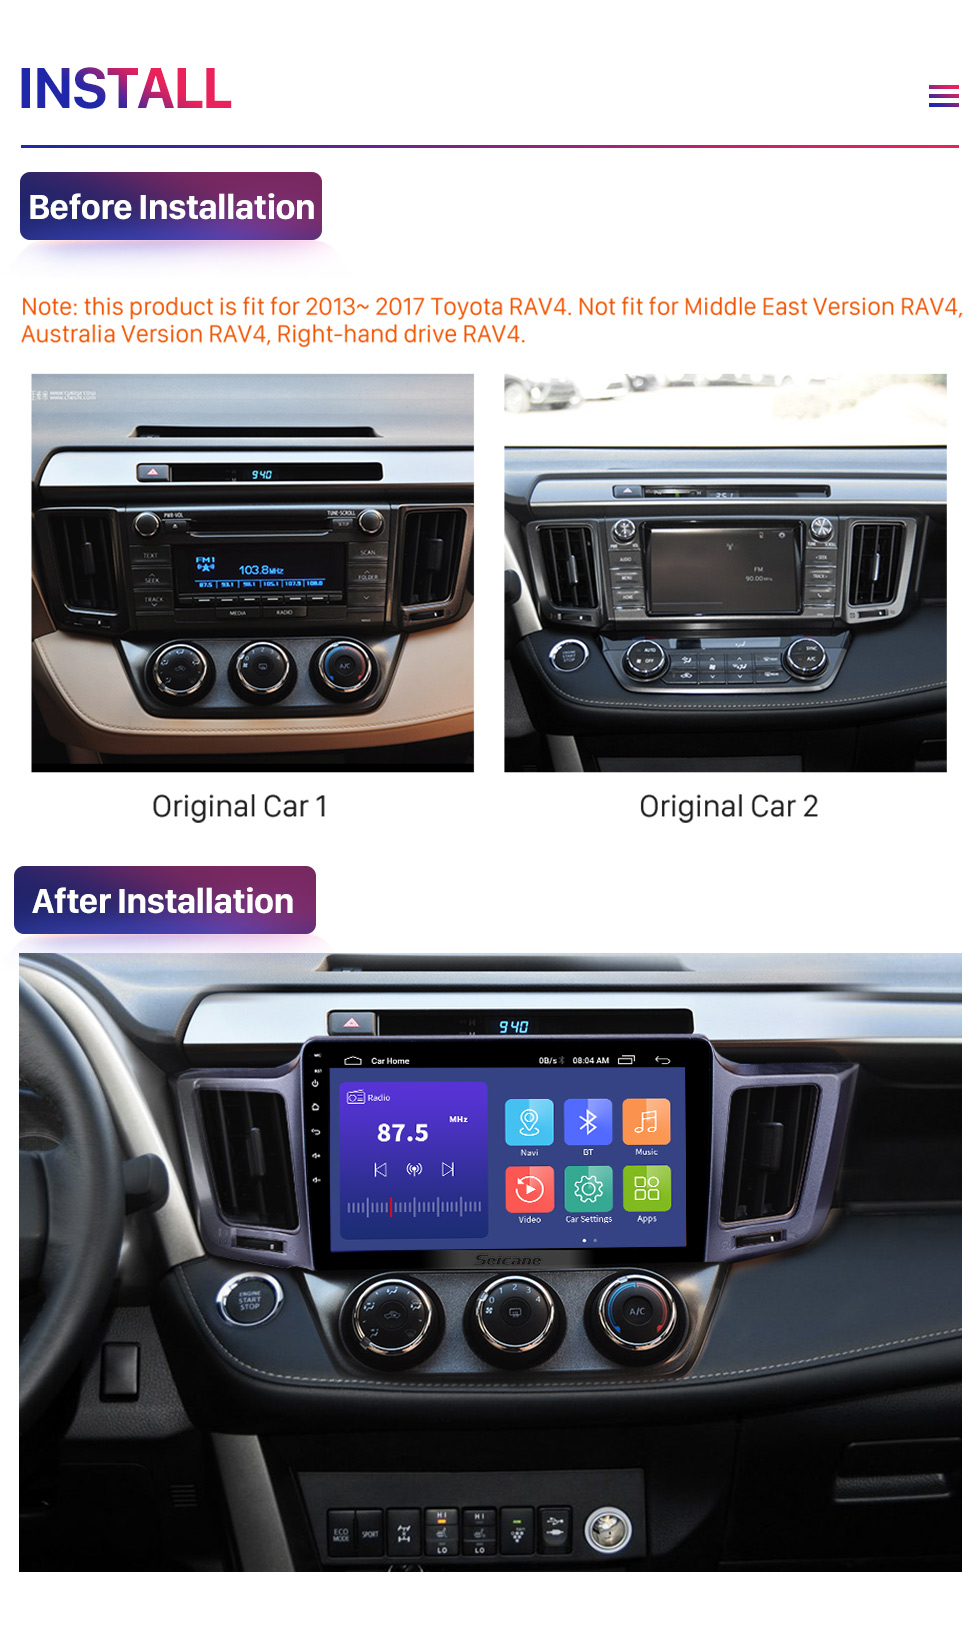 Seicane 2013-2016 Toyota RAV4 10.1 inch Android 10.0 GPS Sat Nav In Car with Touch Screen 3G WiFi AM FM Radio Bluetooth Music USB support OBD2 DVR TPMS